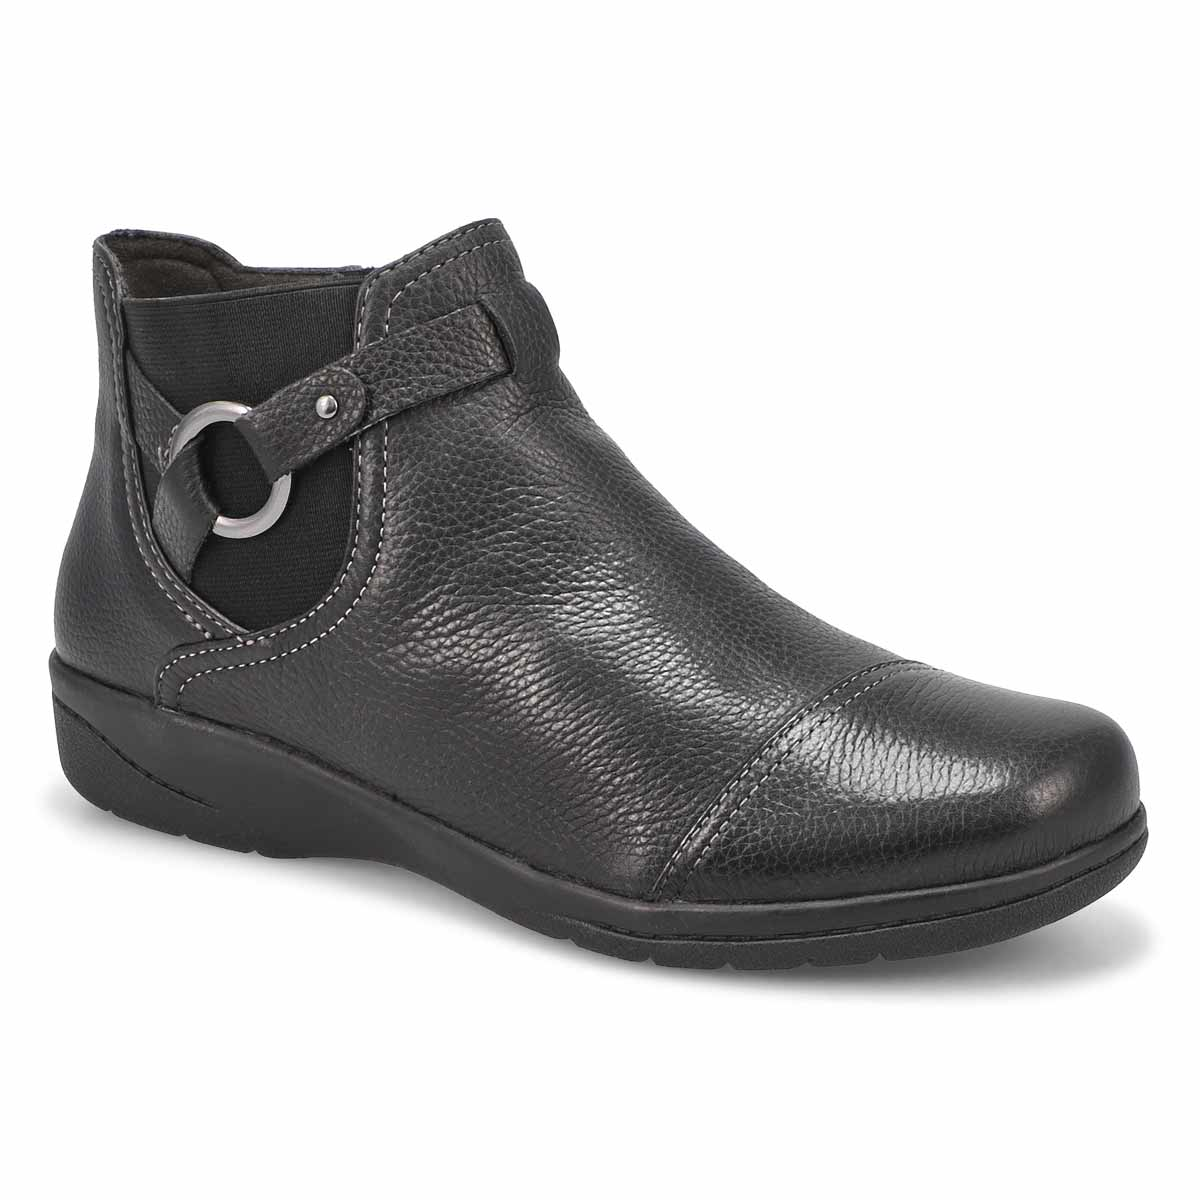 Lds Cheyn Track blk ankle boot-WIDE